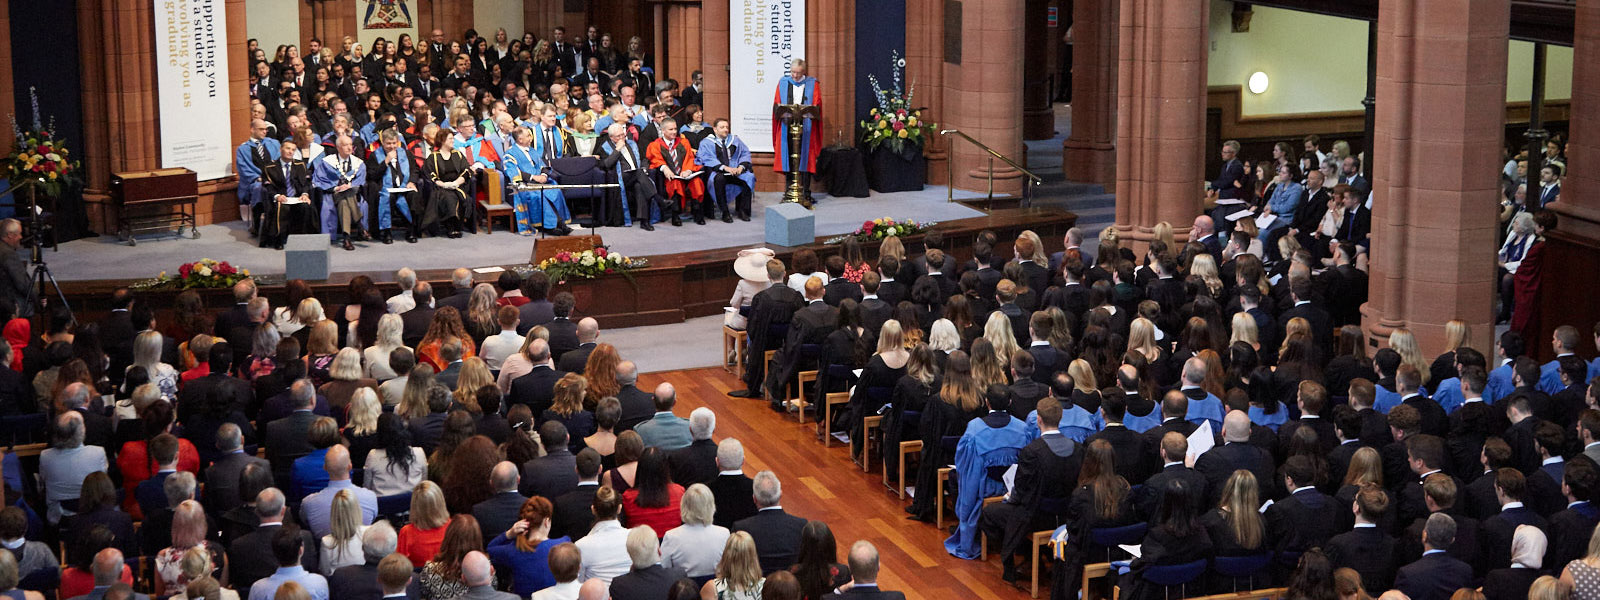 a birds-eye view of guests and graduates sitting in the Barony Hall during a graduation ceremony